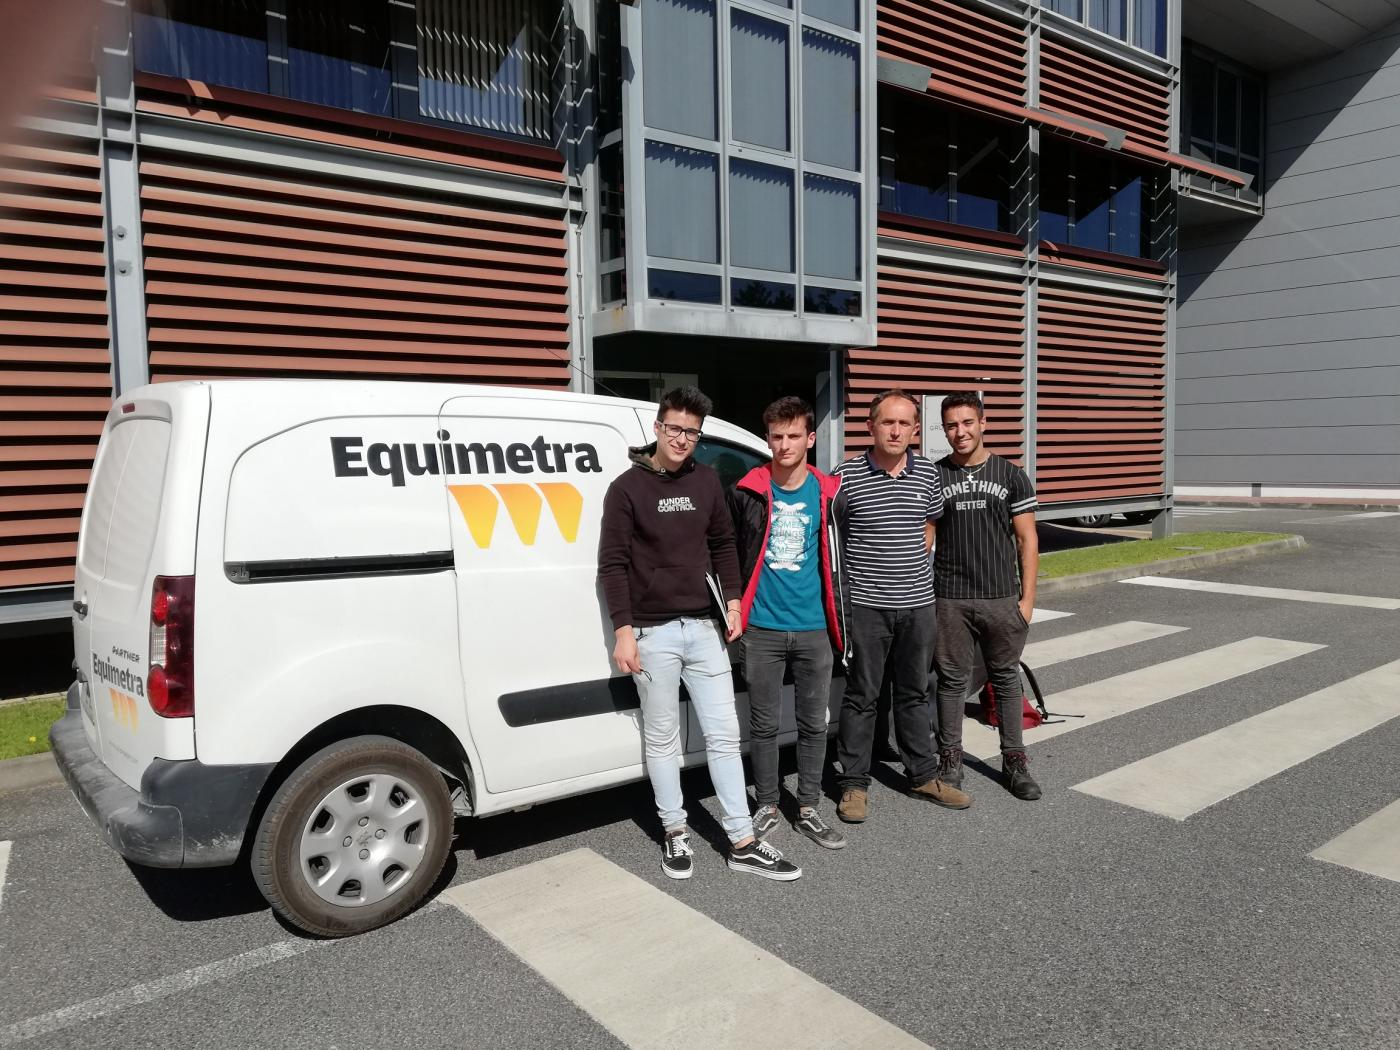 Foto:Equimetra receives in training students of Vocational Schools of Leiria, Ourém and Pombal